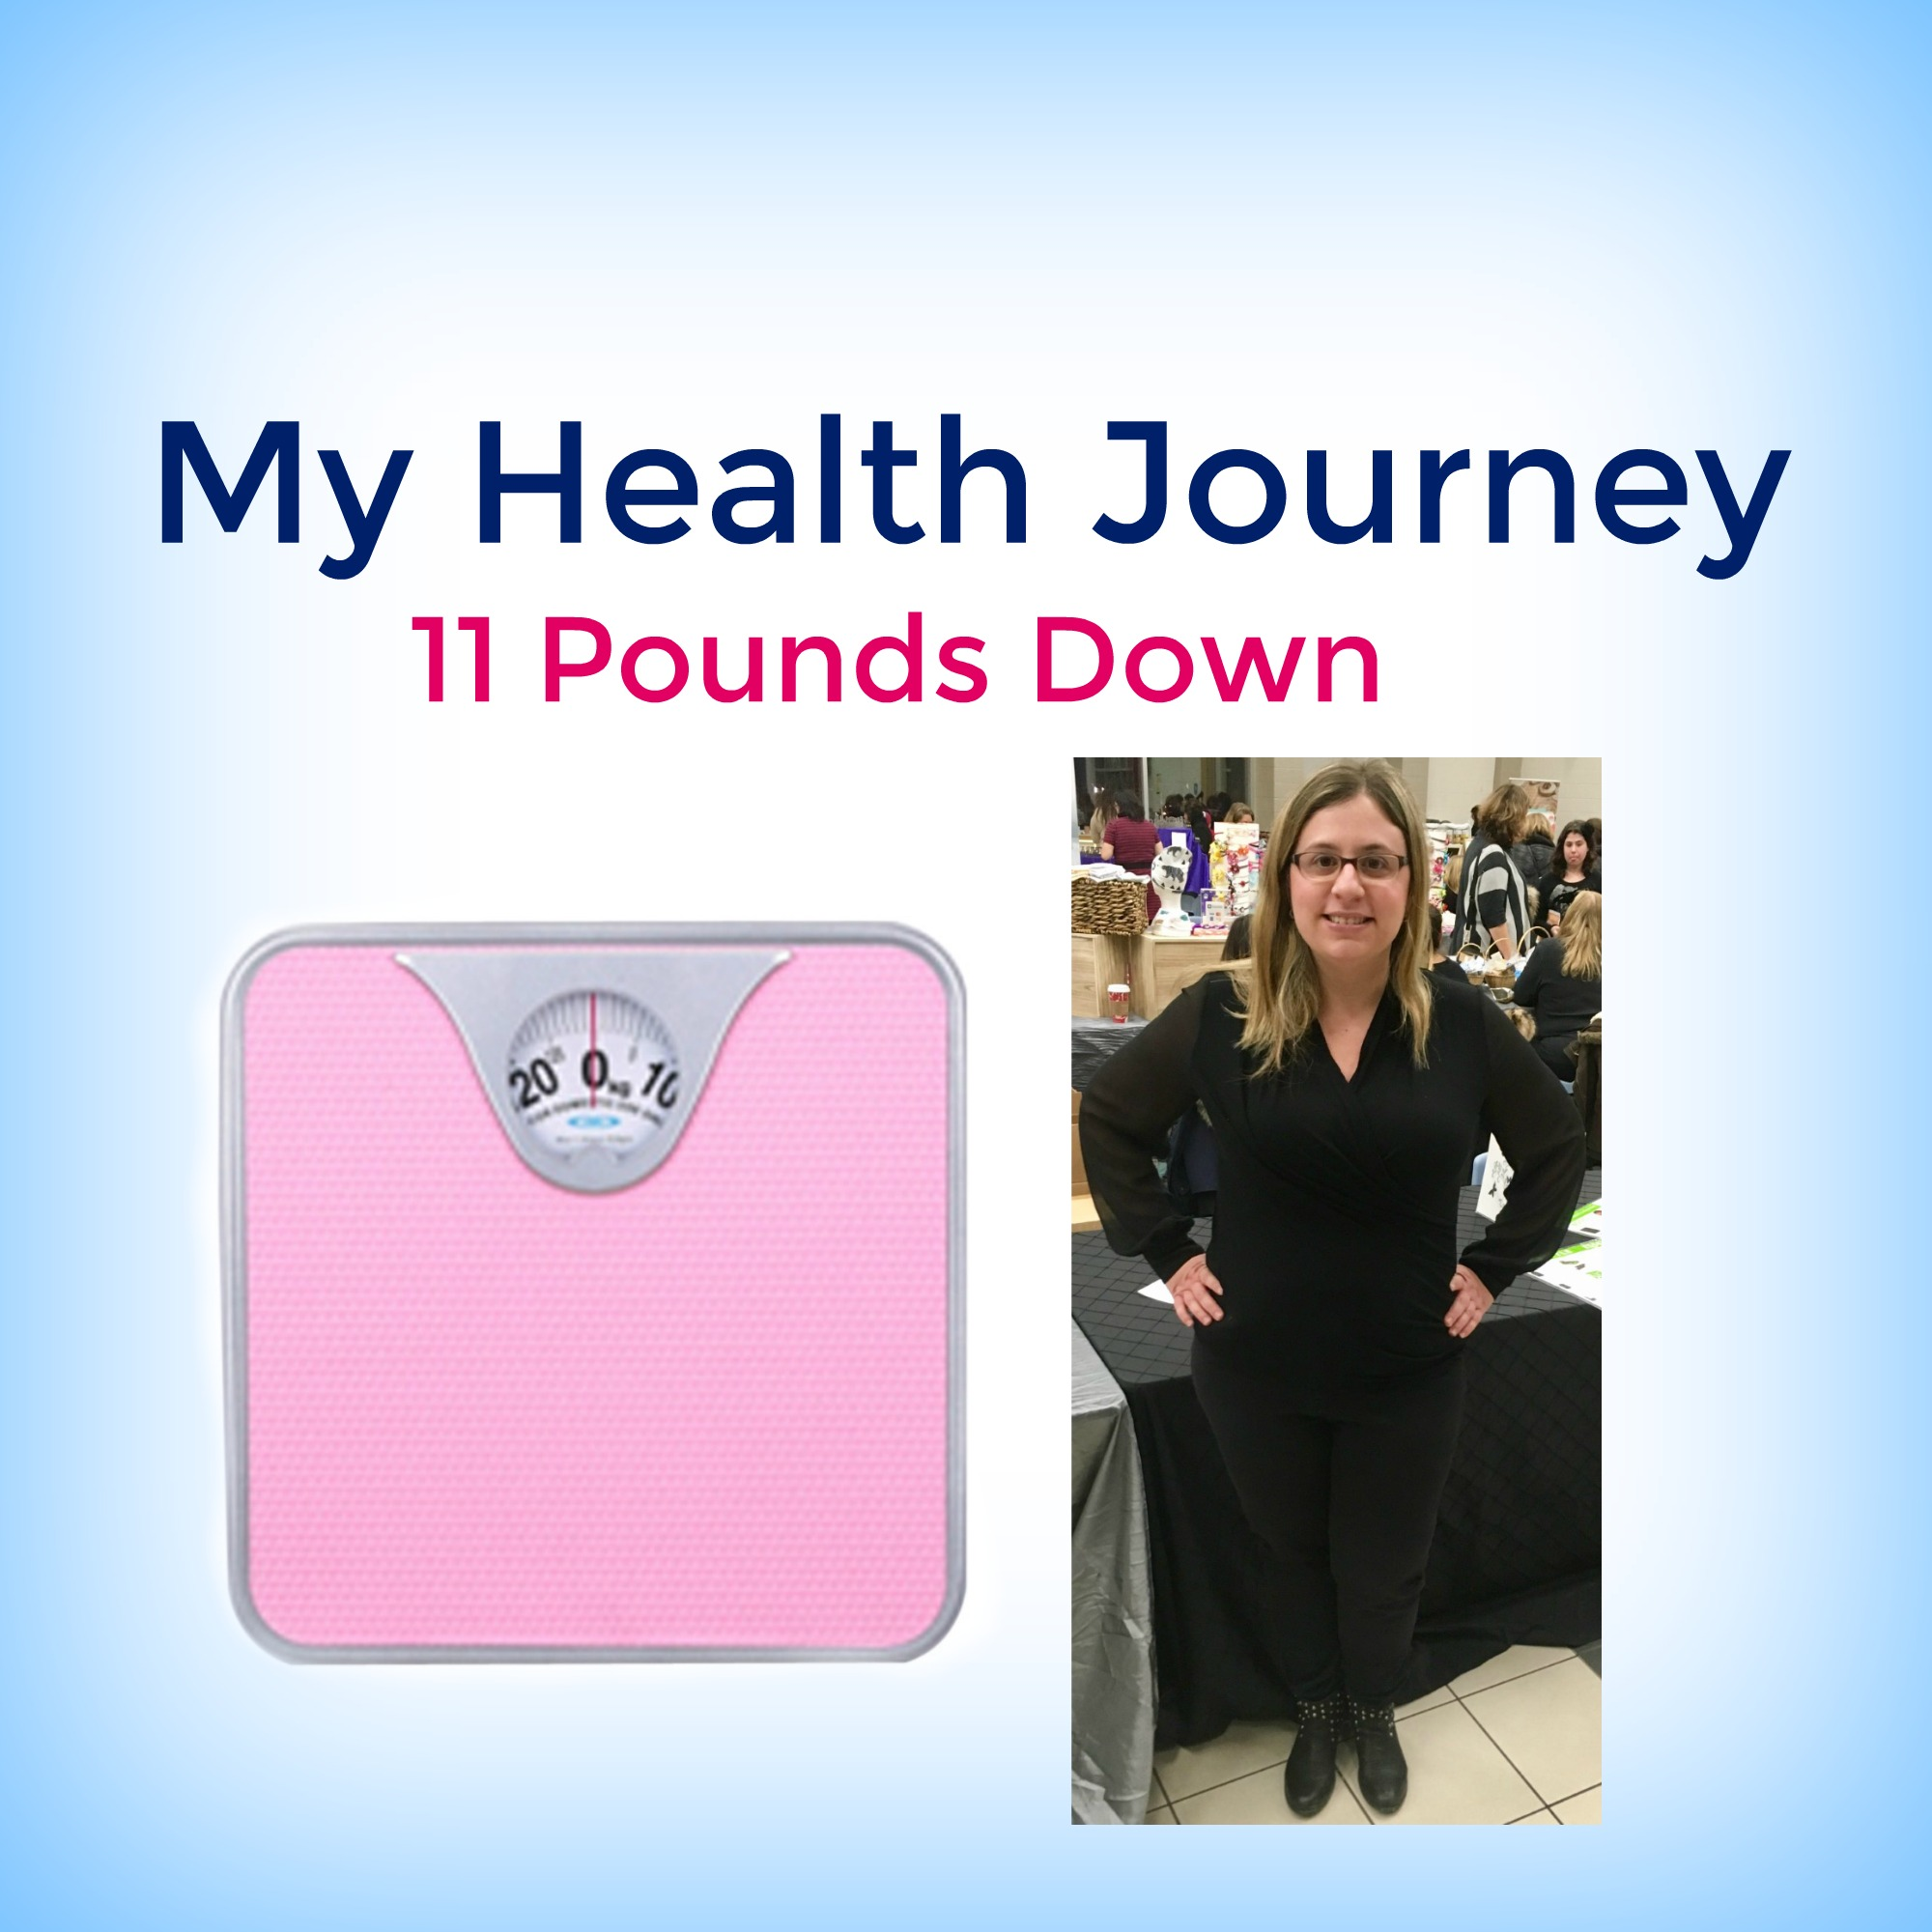 My Journey To Health: 11 Pounds Down!